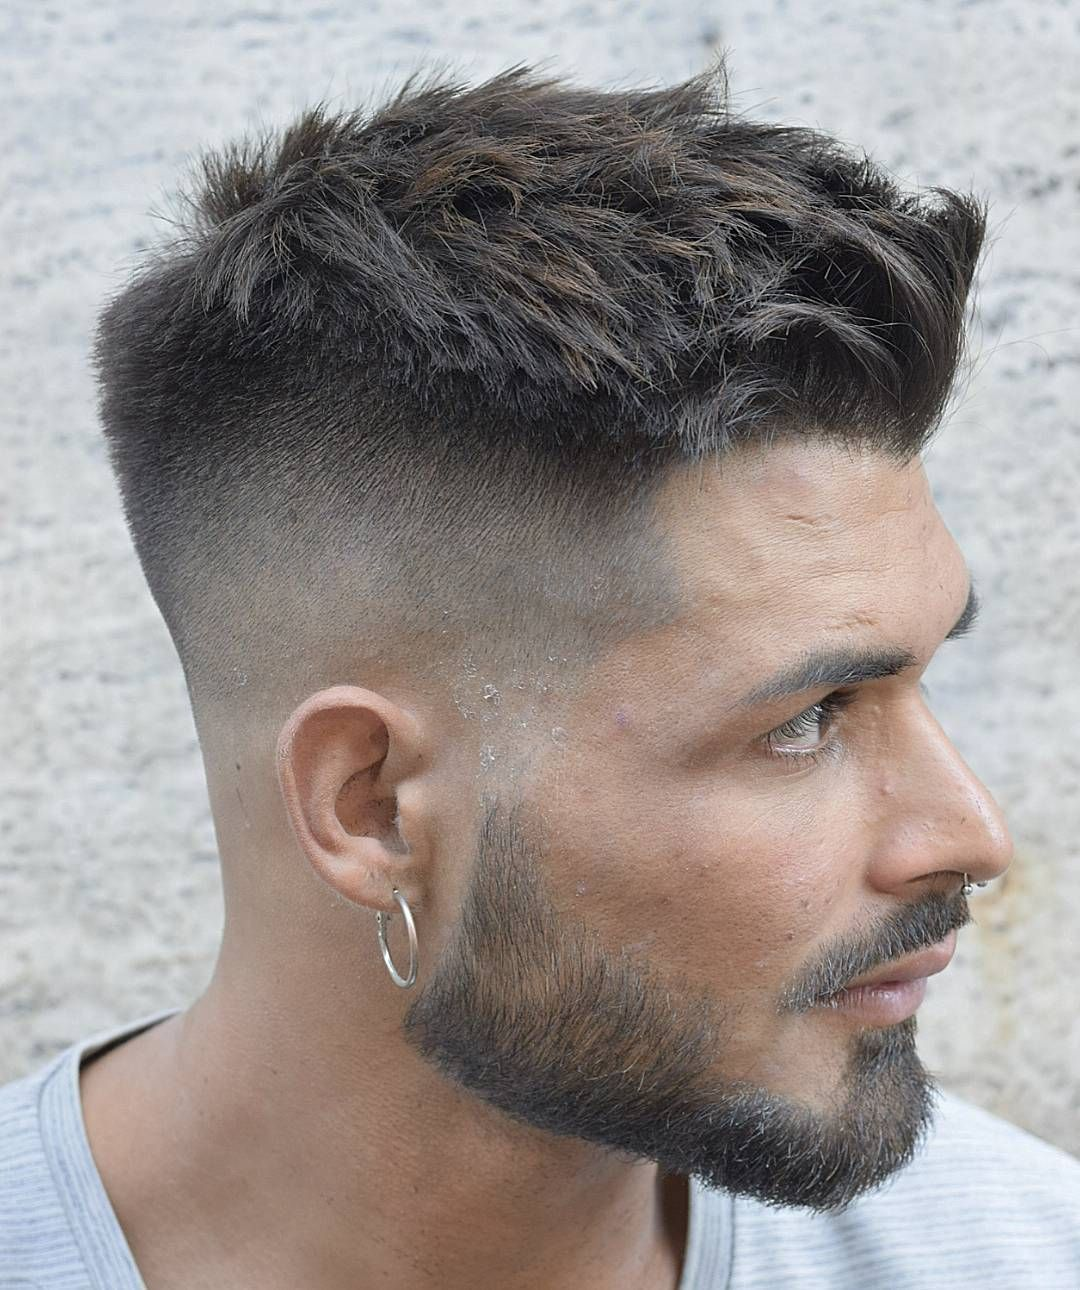 Best Men S Haircuts Men S Hairstyles 2020 Update Haircuts